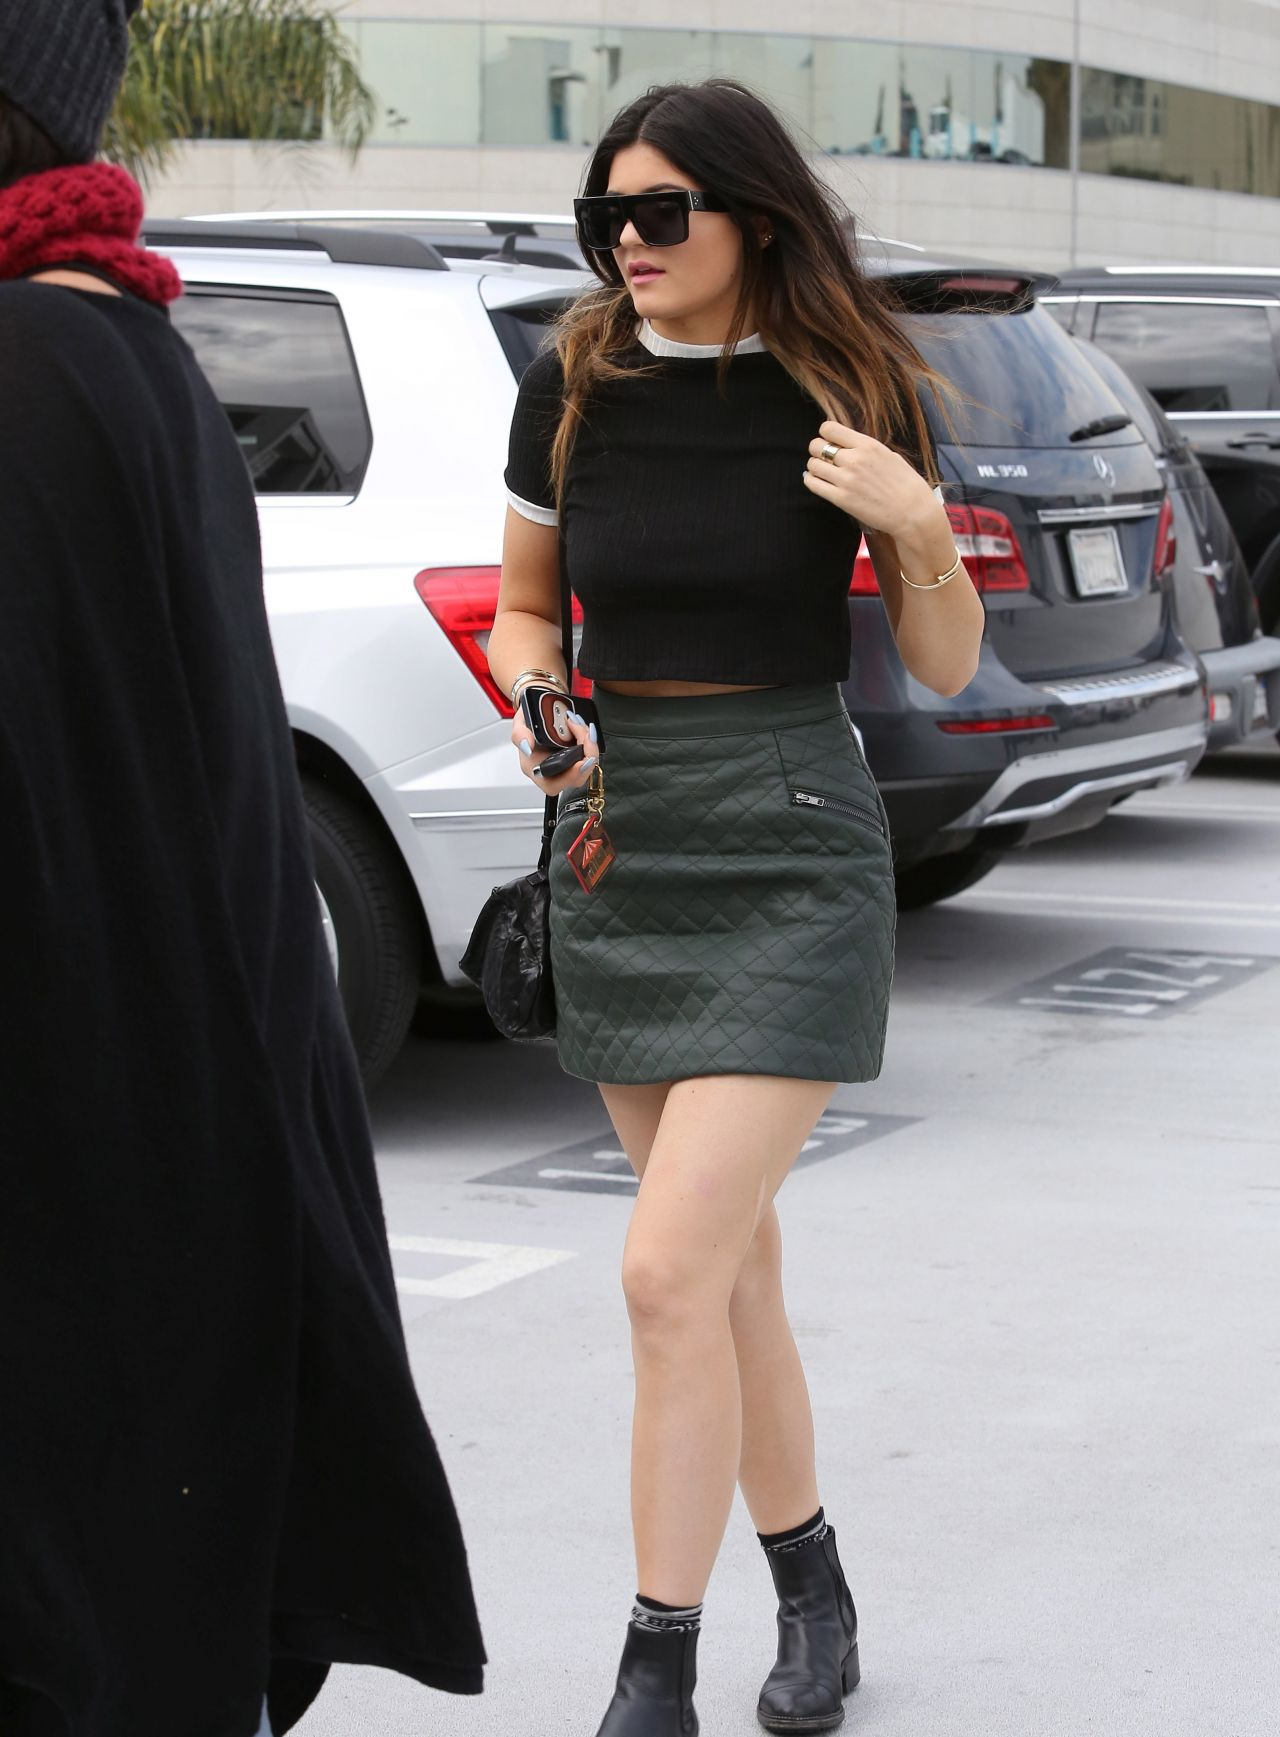 Kylie Jenner Street Style - Shopping in West Hollywood ... Anna Kendrick